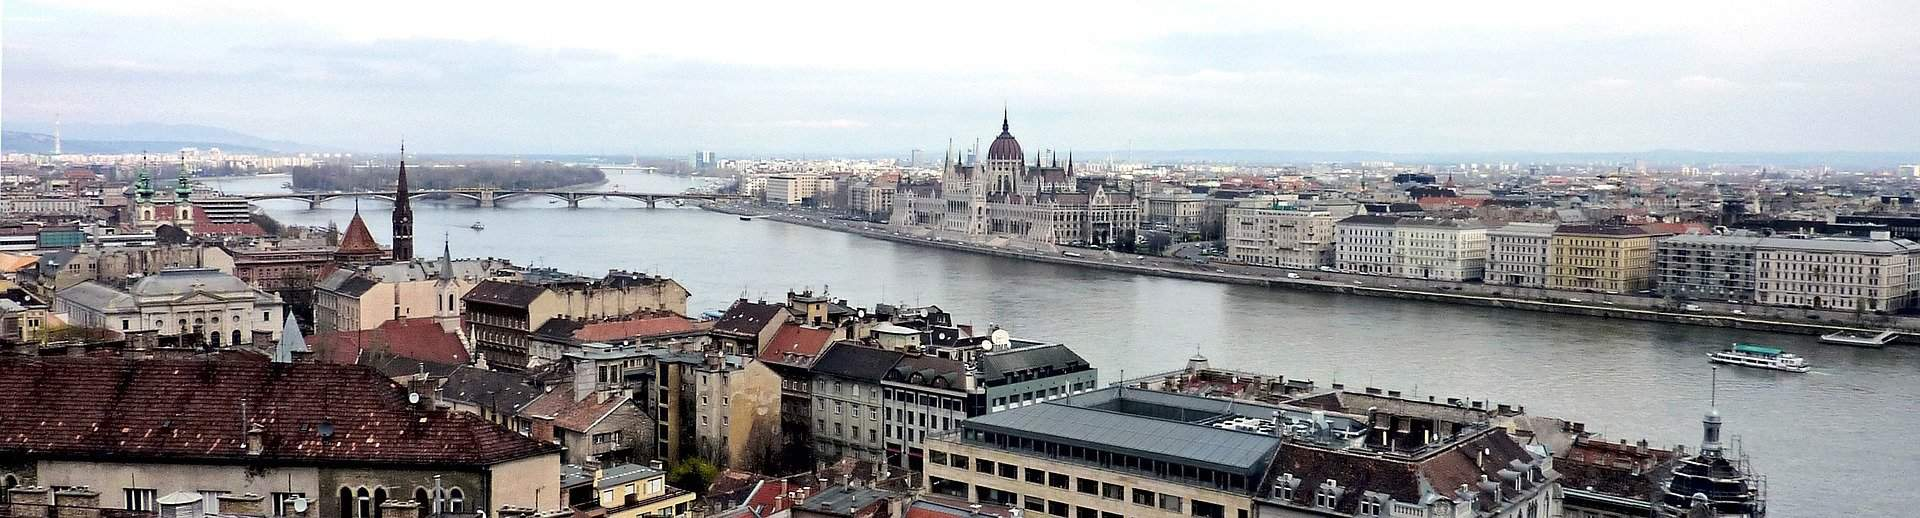 Real estate: luxury homes in Budapest